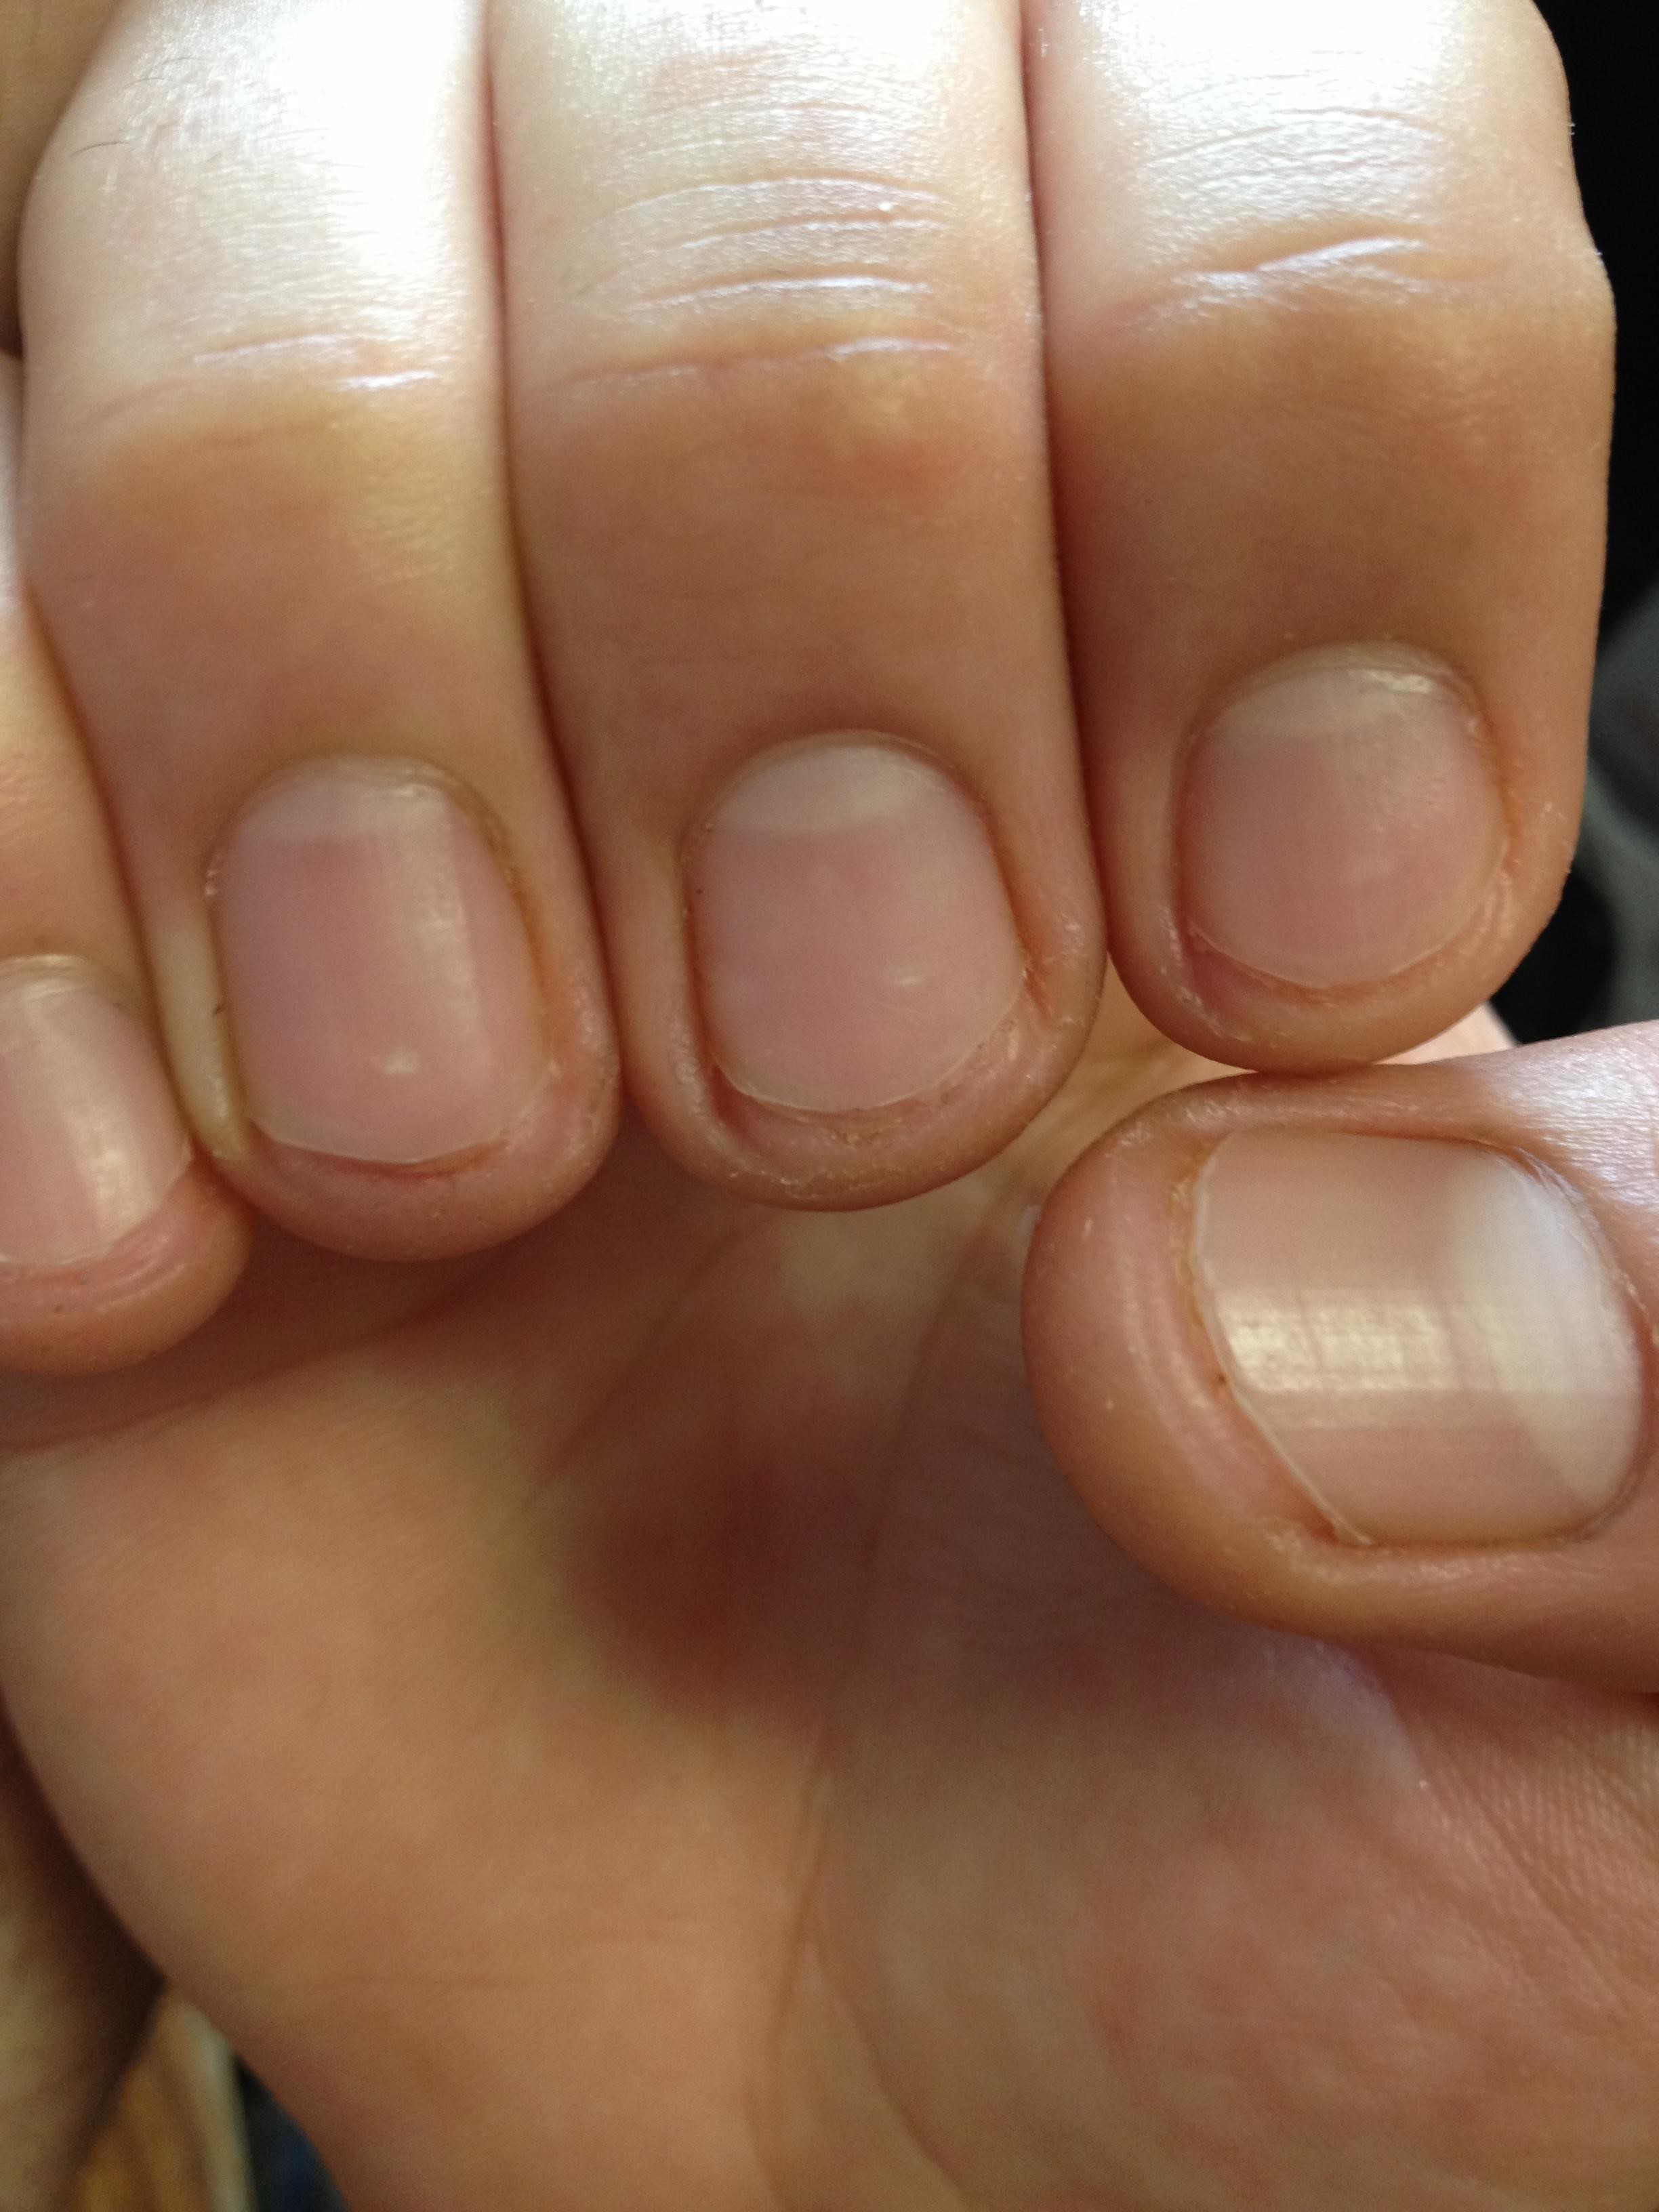 8 Fingernails Cut Way Too Short and 2 Cut Just Right | The ...